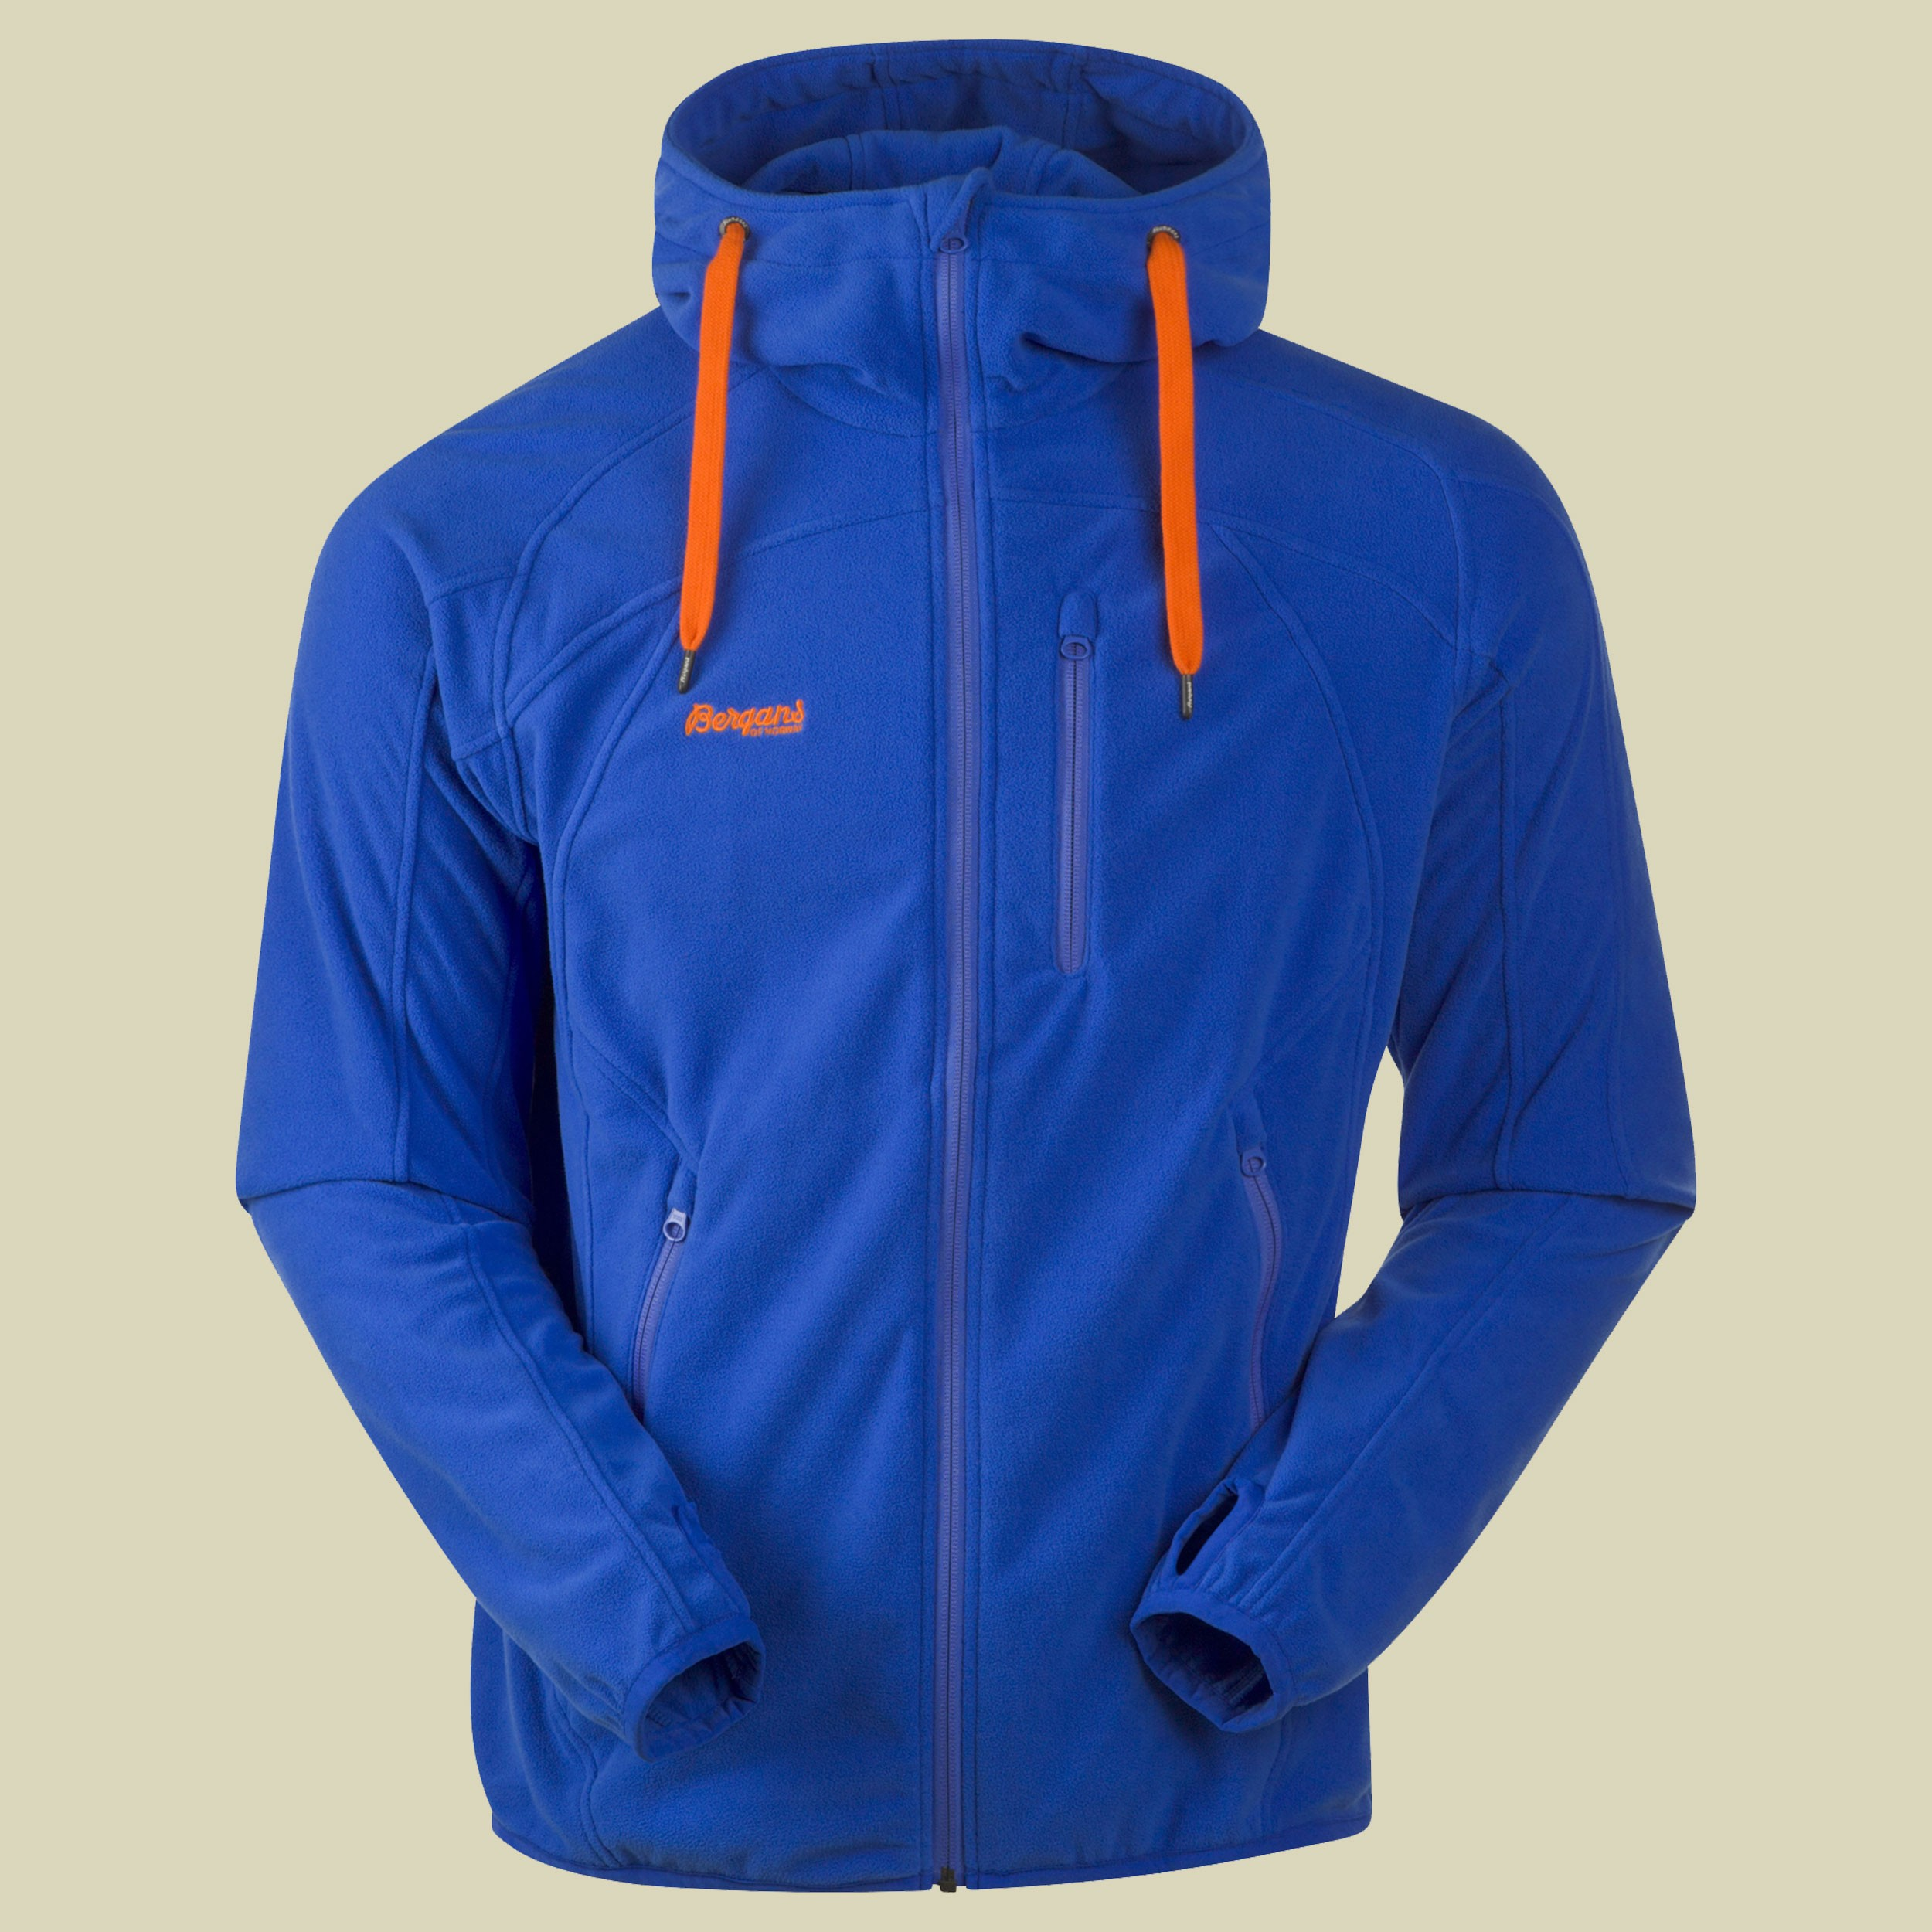 Sandoya Jacket Men